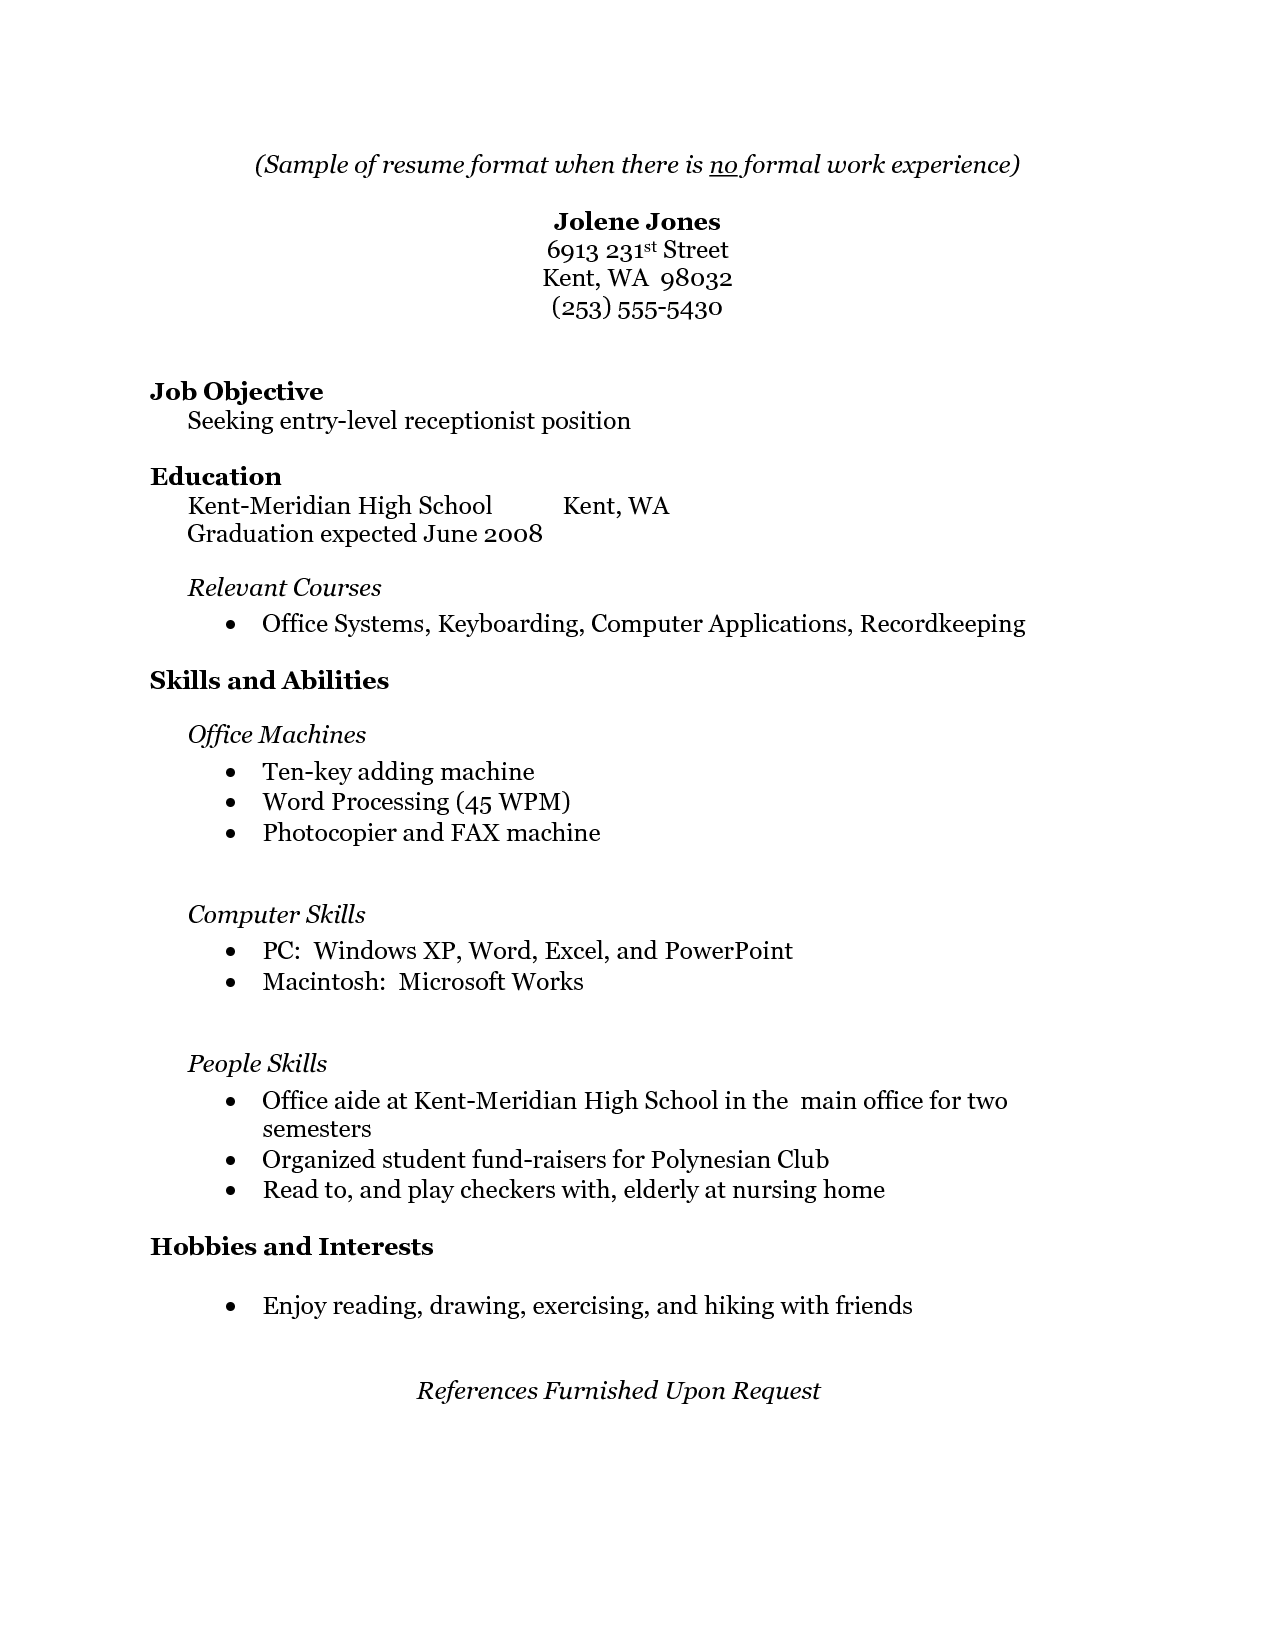 Experience Resume Job Resume No Experience Examples Http Www